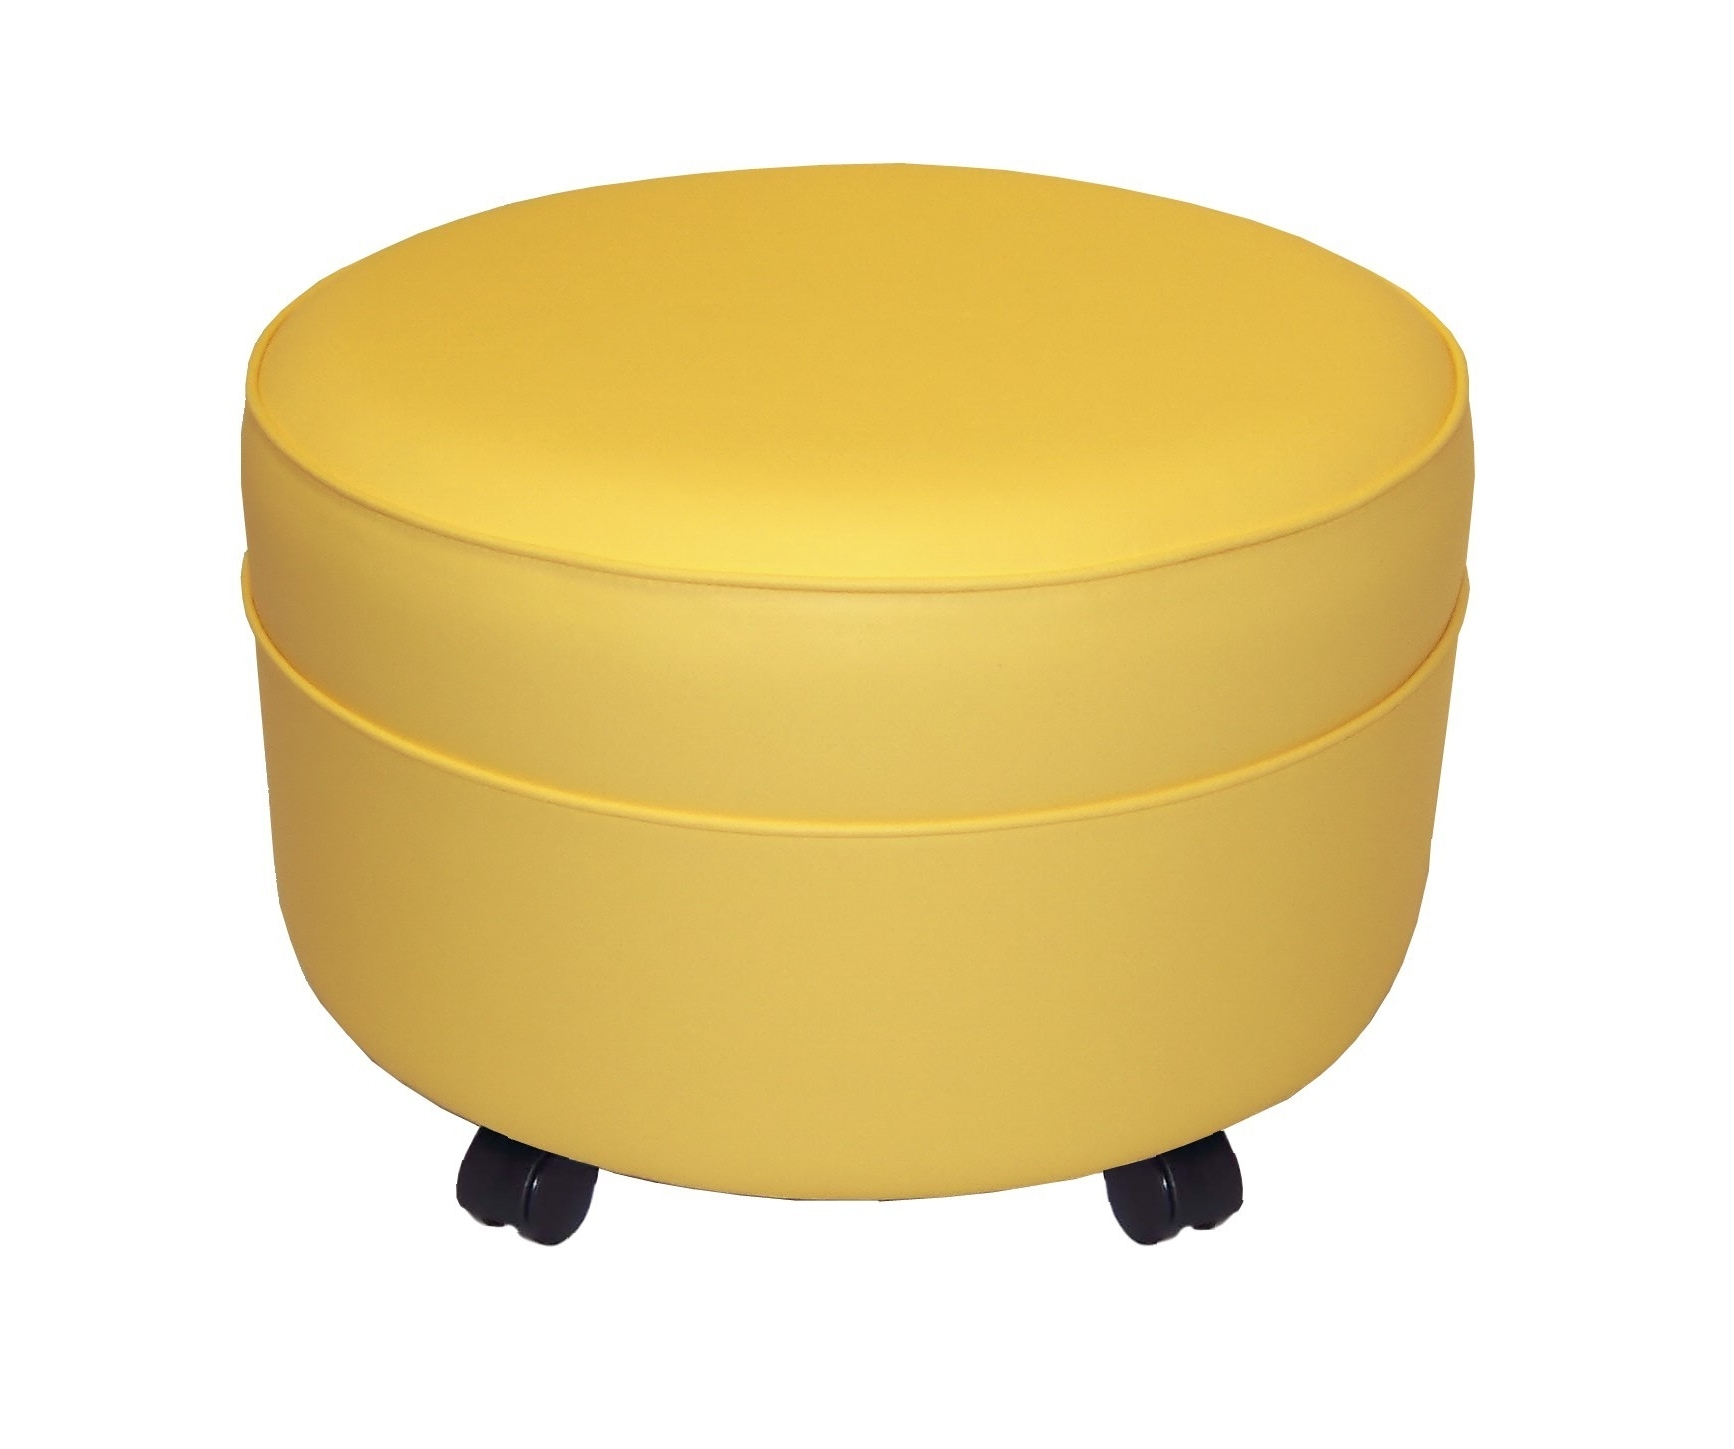 Best And Newest Choosing Ottoman With Wheels – Printableboutique In Ottomans With Wheels (View 1 of 15)